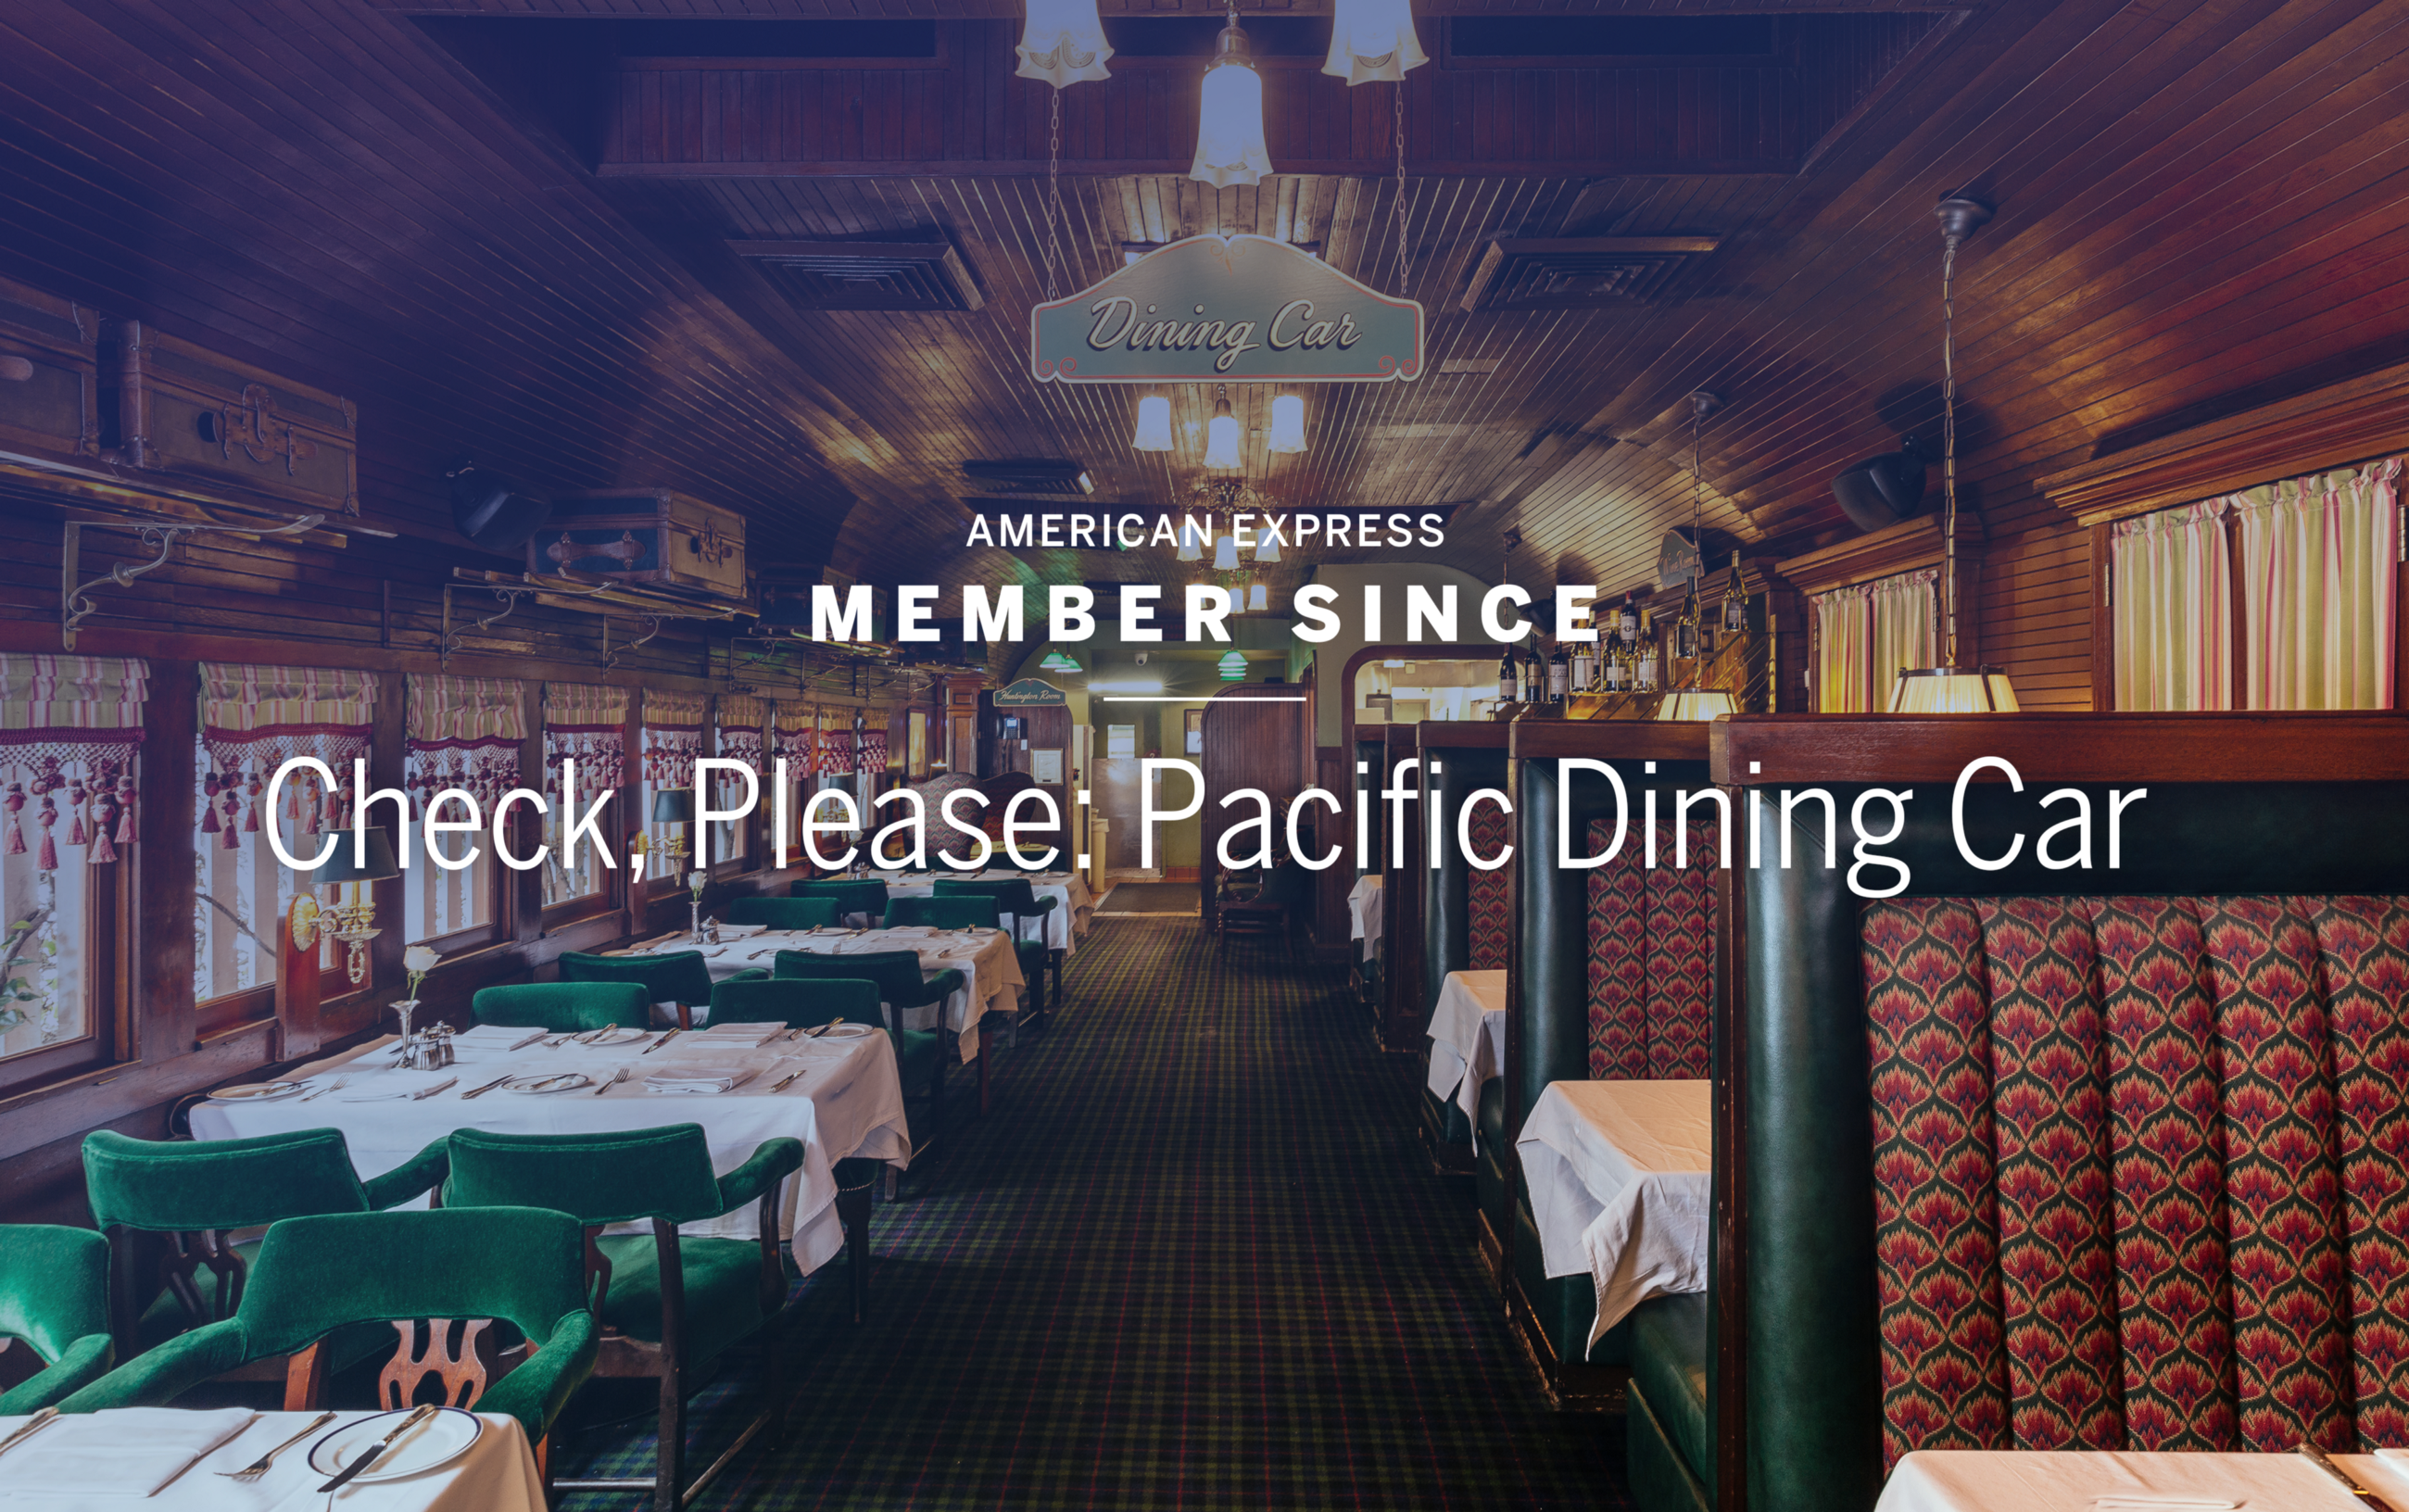 Check Please Pacific Dining Car & Check Please: Pacific Dining Car \u2013 Member Since